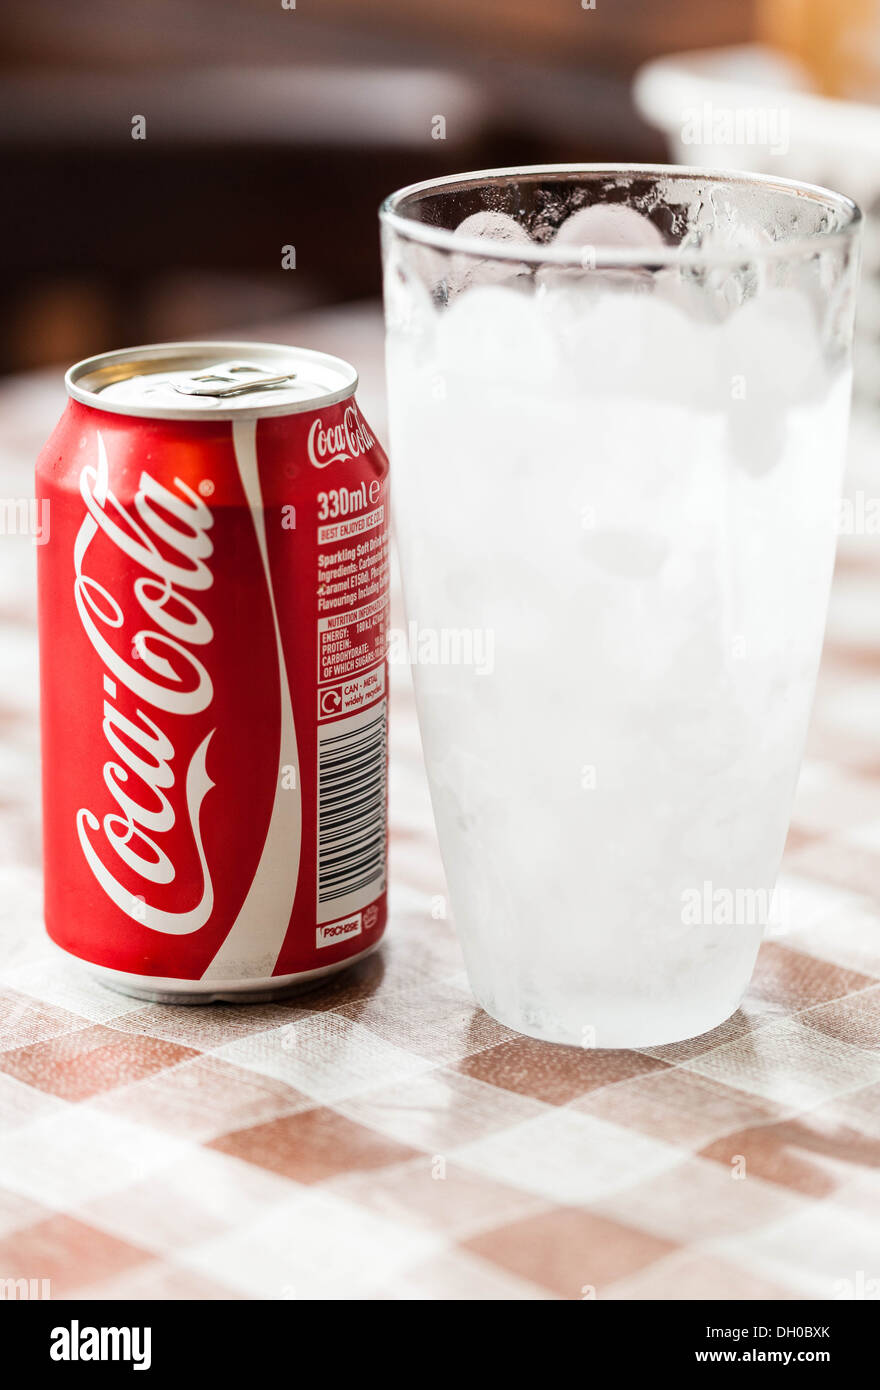 Coca Cola can and glass - Stock Image